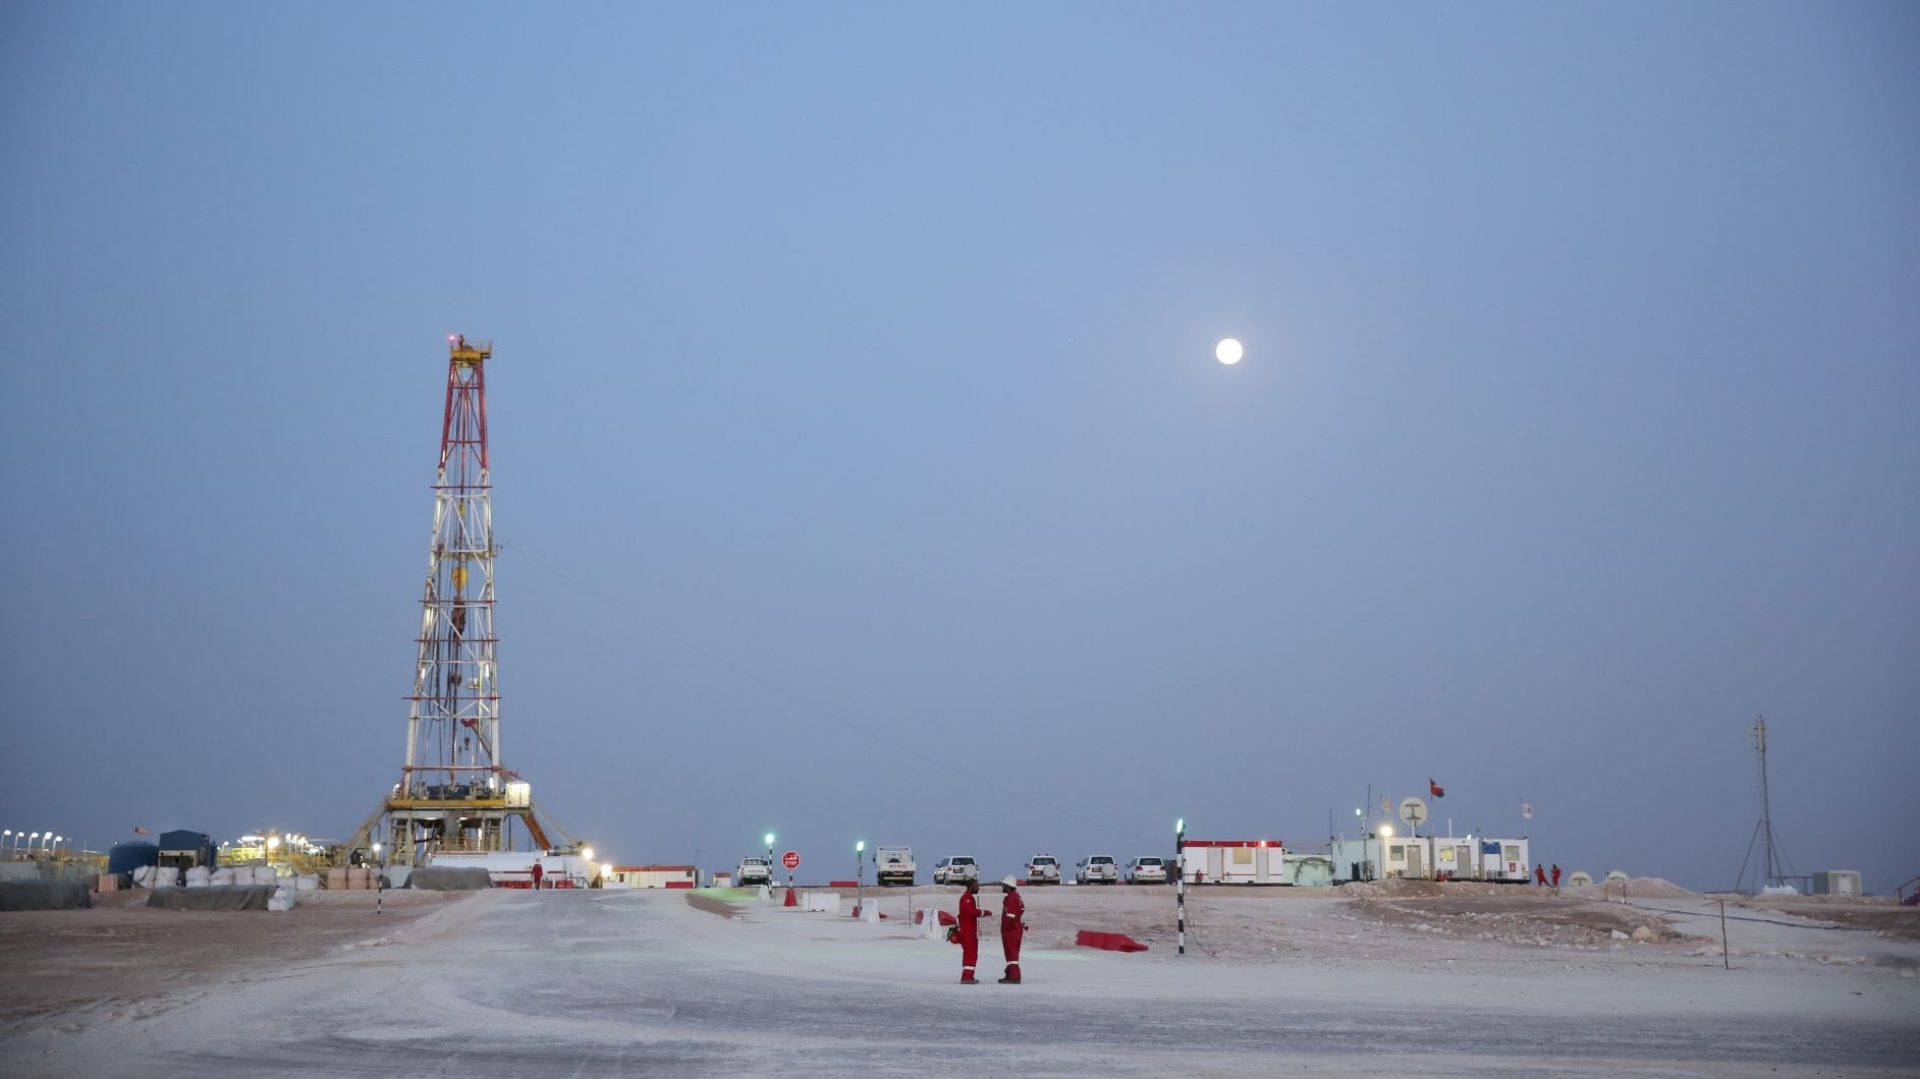 BP has had an upstream presence in Oman since 2007 when it signed an exploration and production sharing agreement for the 2,850 km2 Block 61 in central Oman.